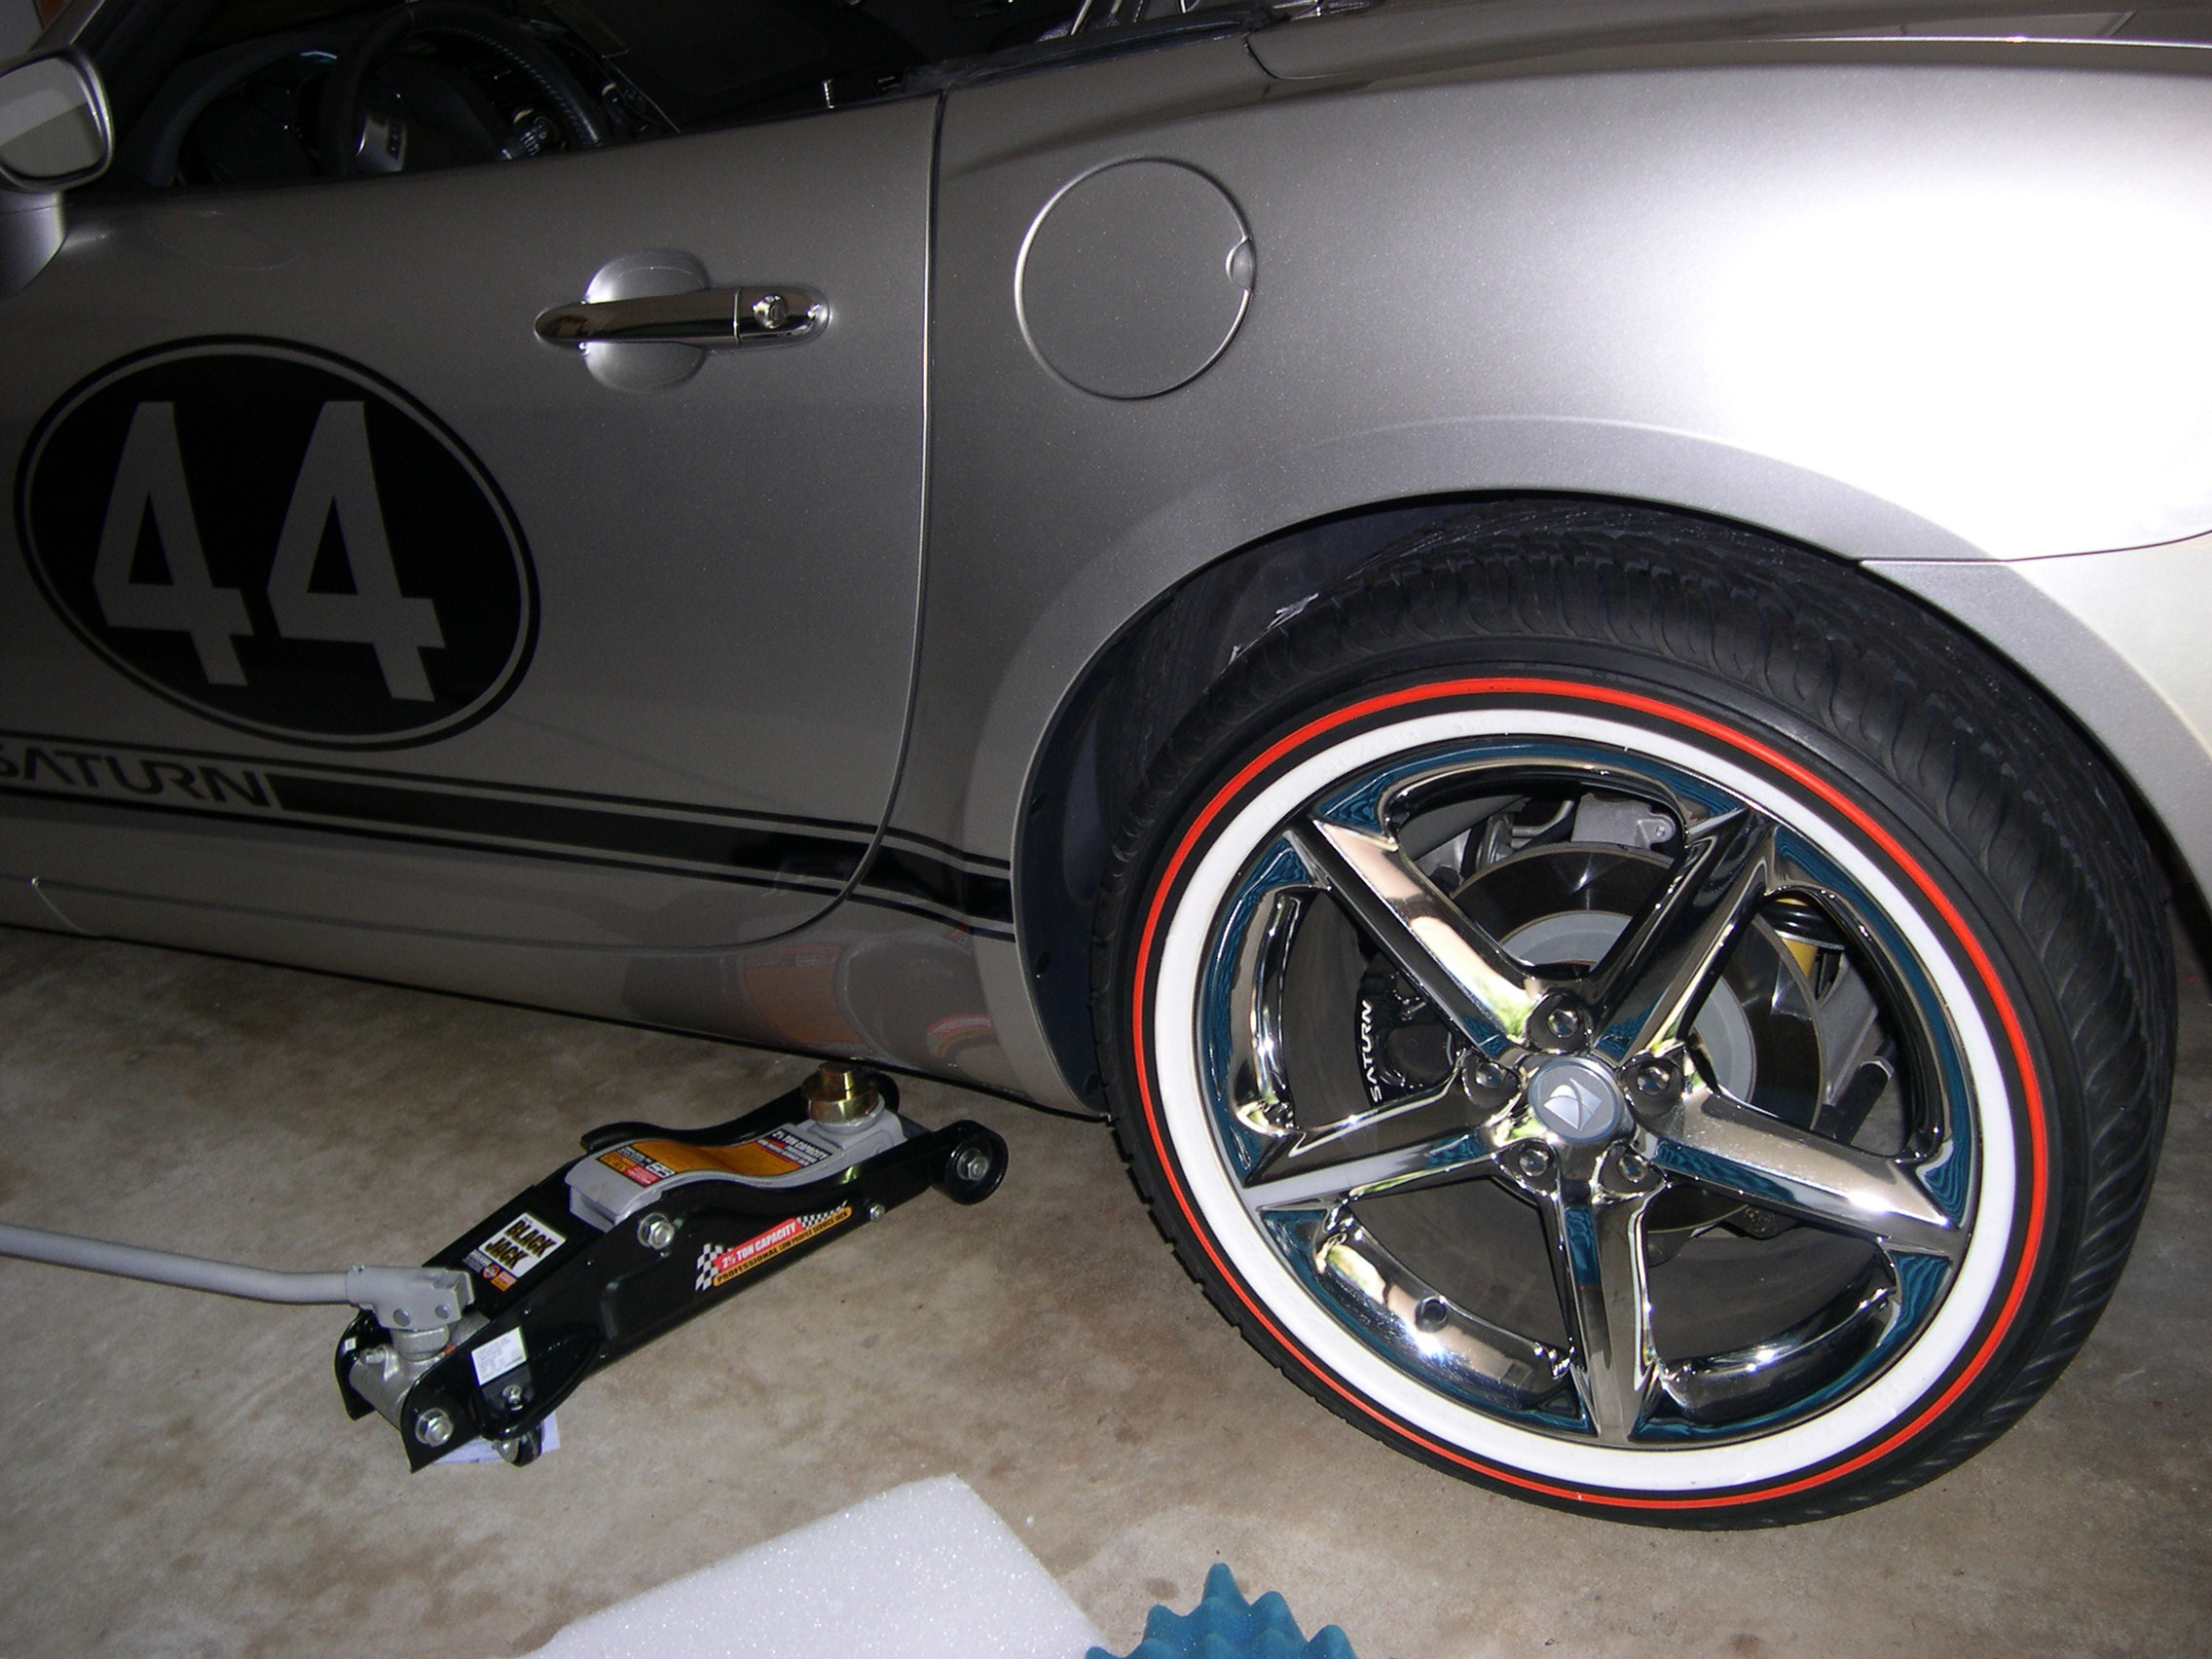 Click image for larger versionname mikes vogue tire jpgviews 10581size